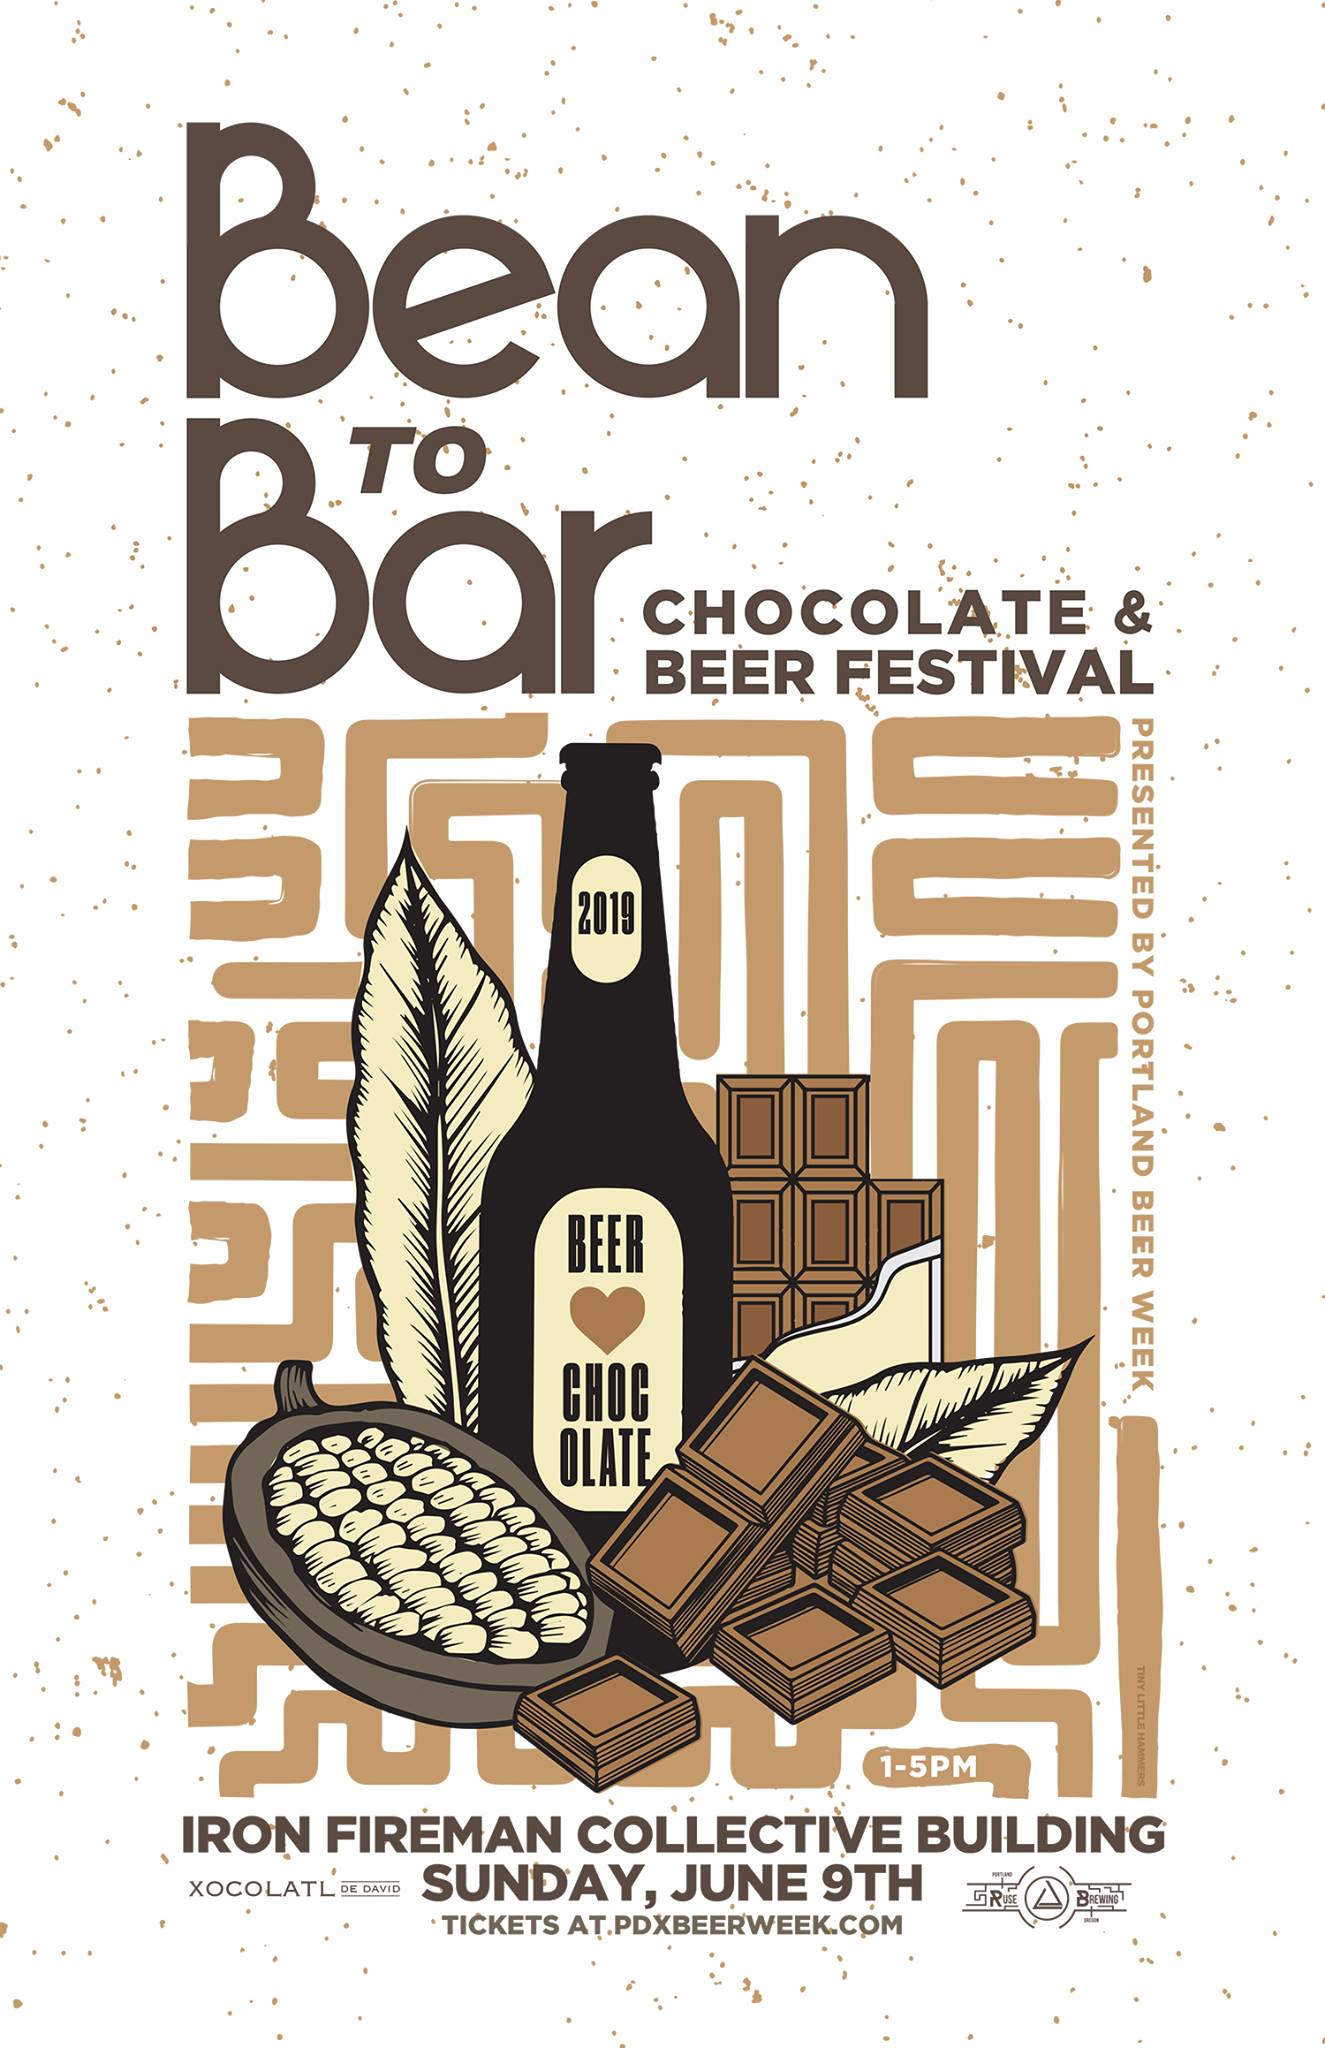 Bean To Bar: Chocolate and Beer Festival - Sun. June 9th, 1-5pmIron Fireman Collective Building, 4784 SE 17th AveBuy tickets hereWe're pouring:• Dutchy (Pinot Noir Barrel-Aged Oud Bruin with Montmorency Cherries and Cacao Nibs)Beer and chocolate were born to be together. With compatible flavor profiles and a similar production process, artisan chocolatiers and brewers come together in a harmonious showcase on Sunday, June 9th from 1-5pm at the Bean to Bar: Chocolate and Beer Festival. The inaugural Bean to Bar festival showcases ten Oregon chocolatiers and what makes their product so unique, each will be paired with a northwest brewery pouring beers complimentary to the chocolates. All festival attendees will be able to sample the chocolates, use tickets for beers and purchase bars to-go directly from the chocolatiers!